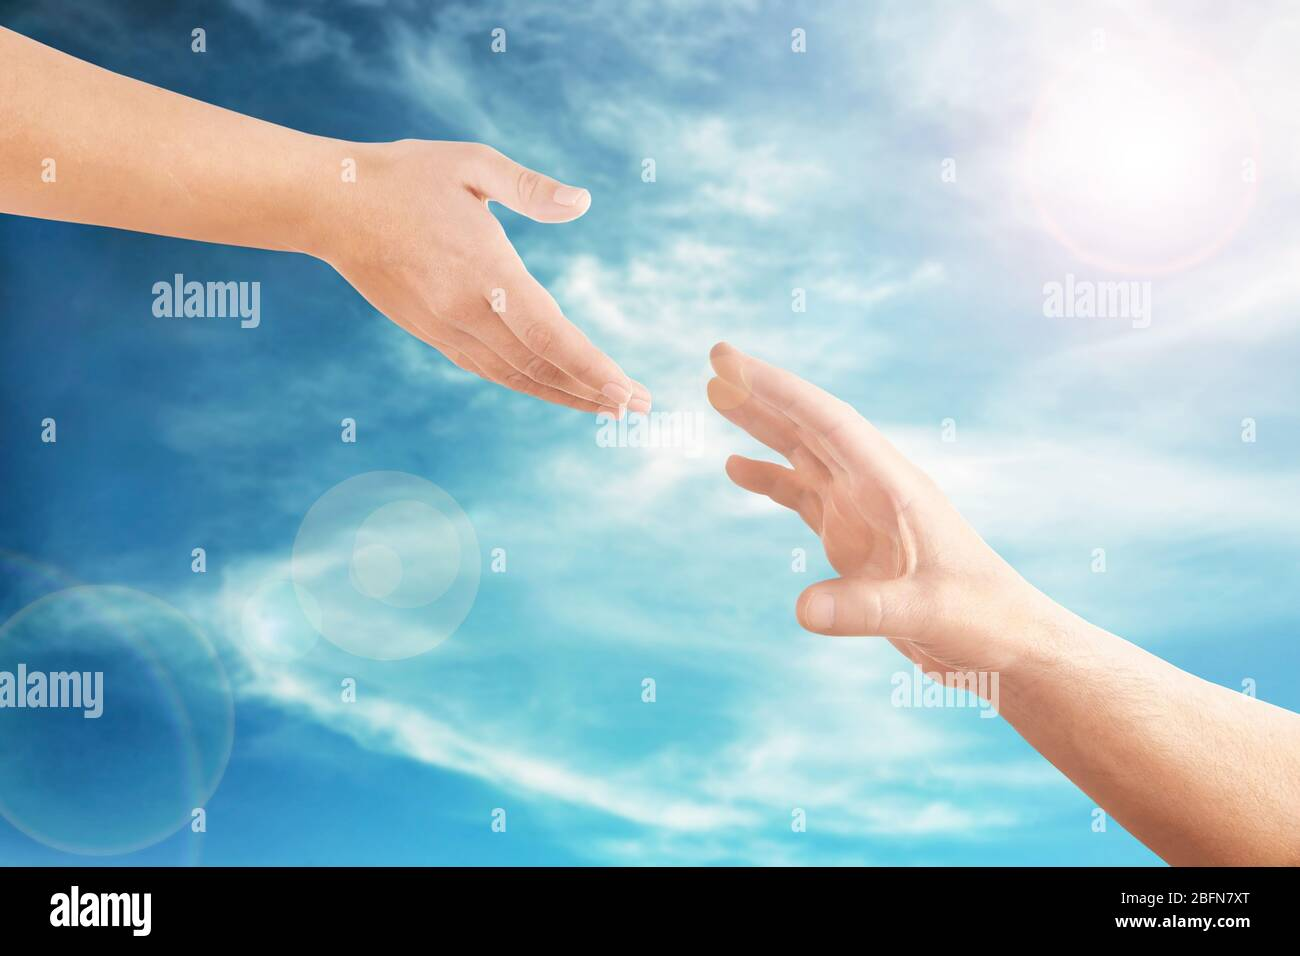 Female and male hands reaching to each other on sky background. Help and care concept. Stock Photo